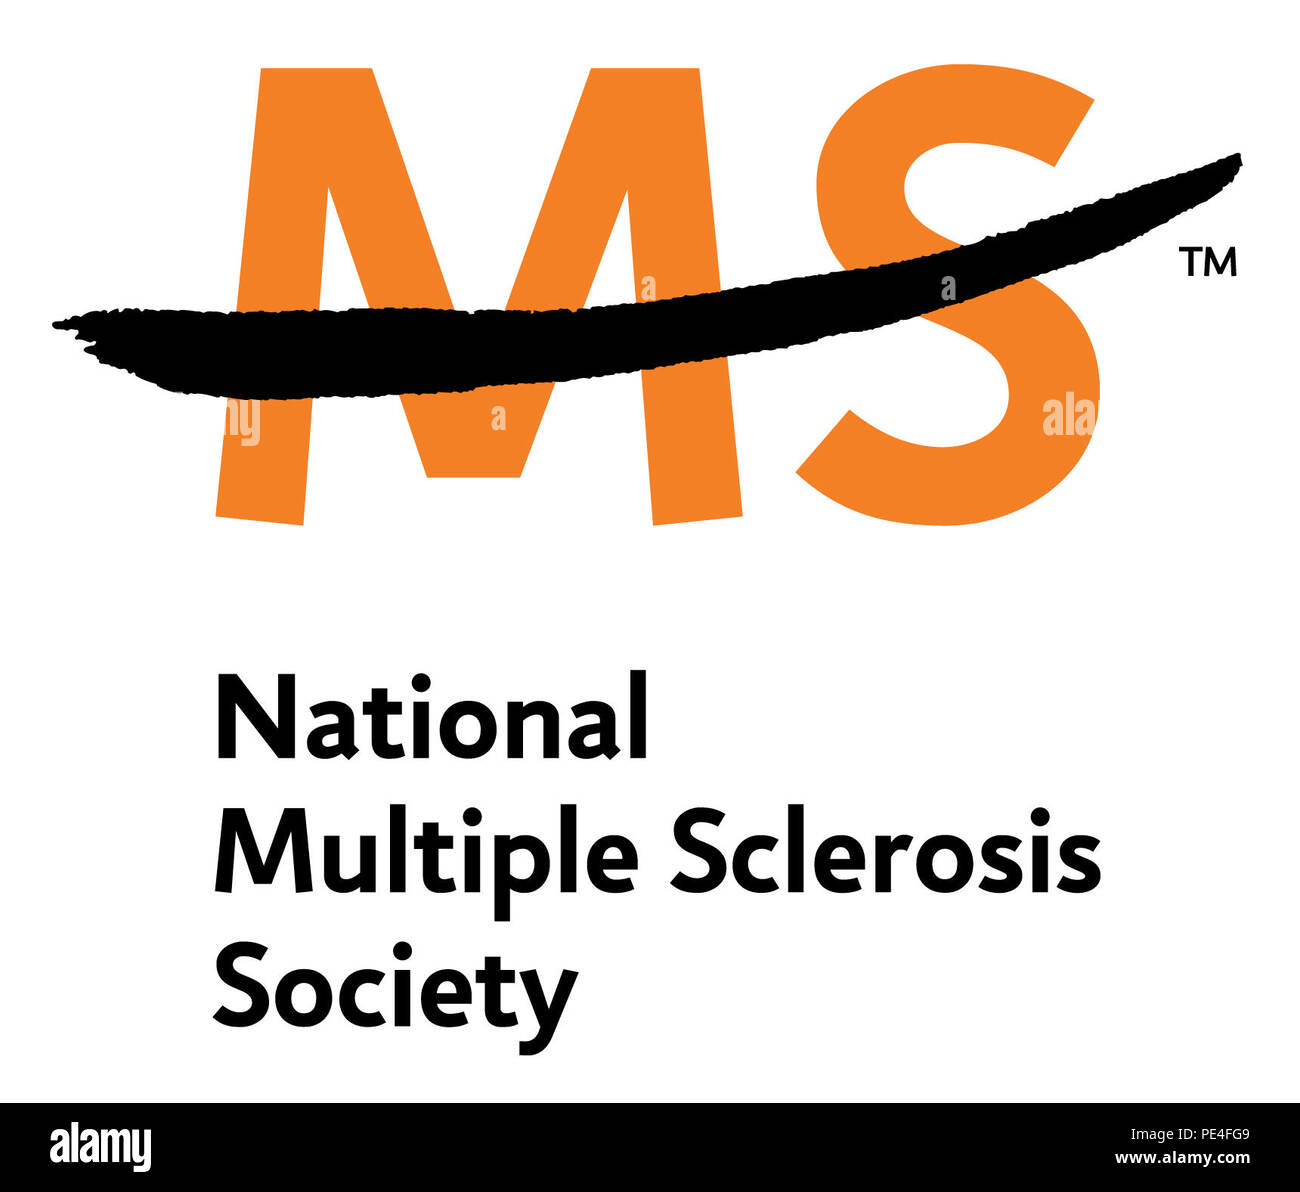 Lost To Multiple Sclerosis: Friends